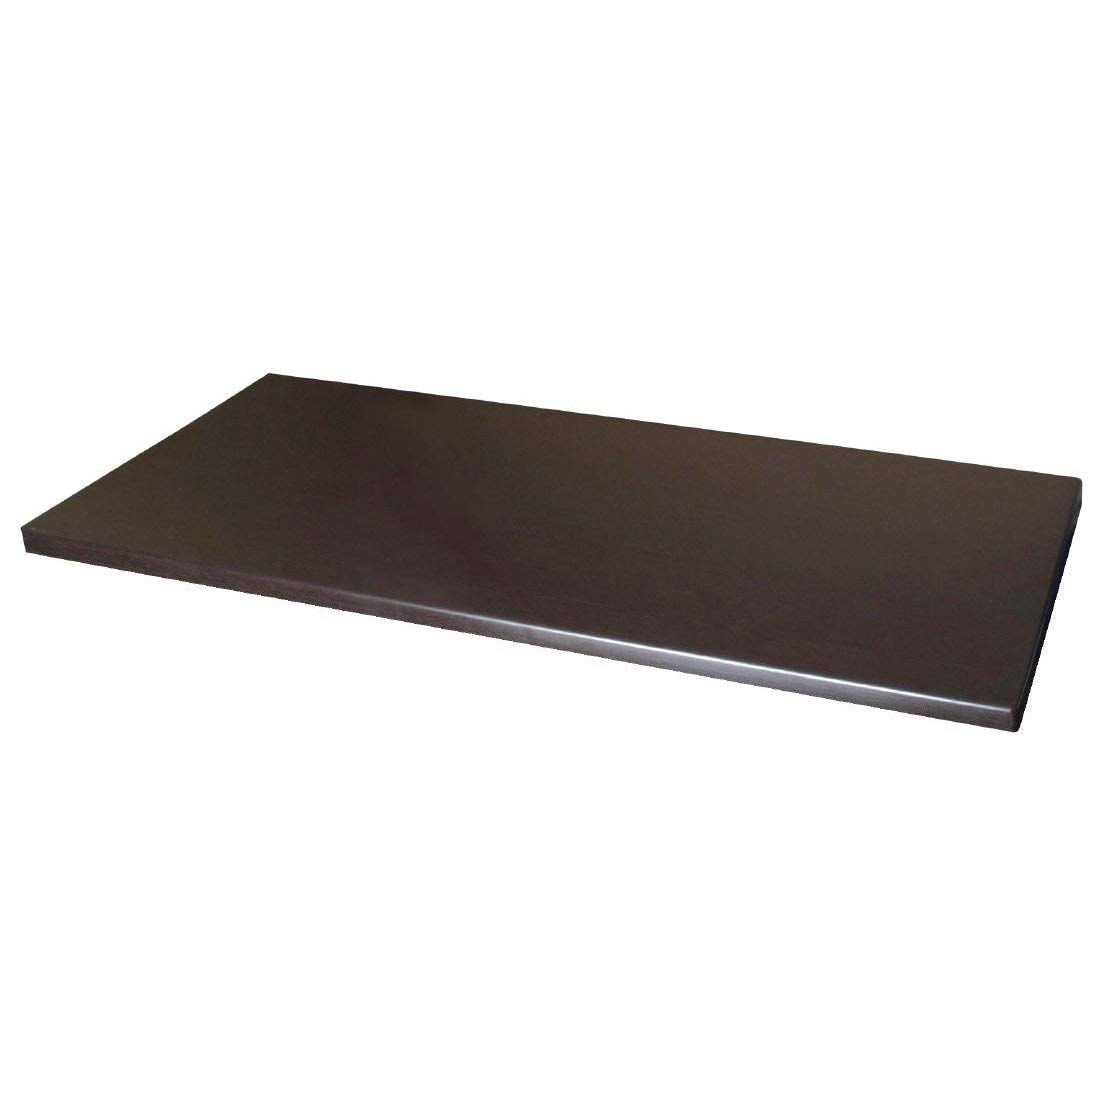 Werzalit plus dn646 rectangular tablero de la mesa